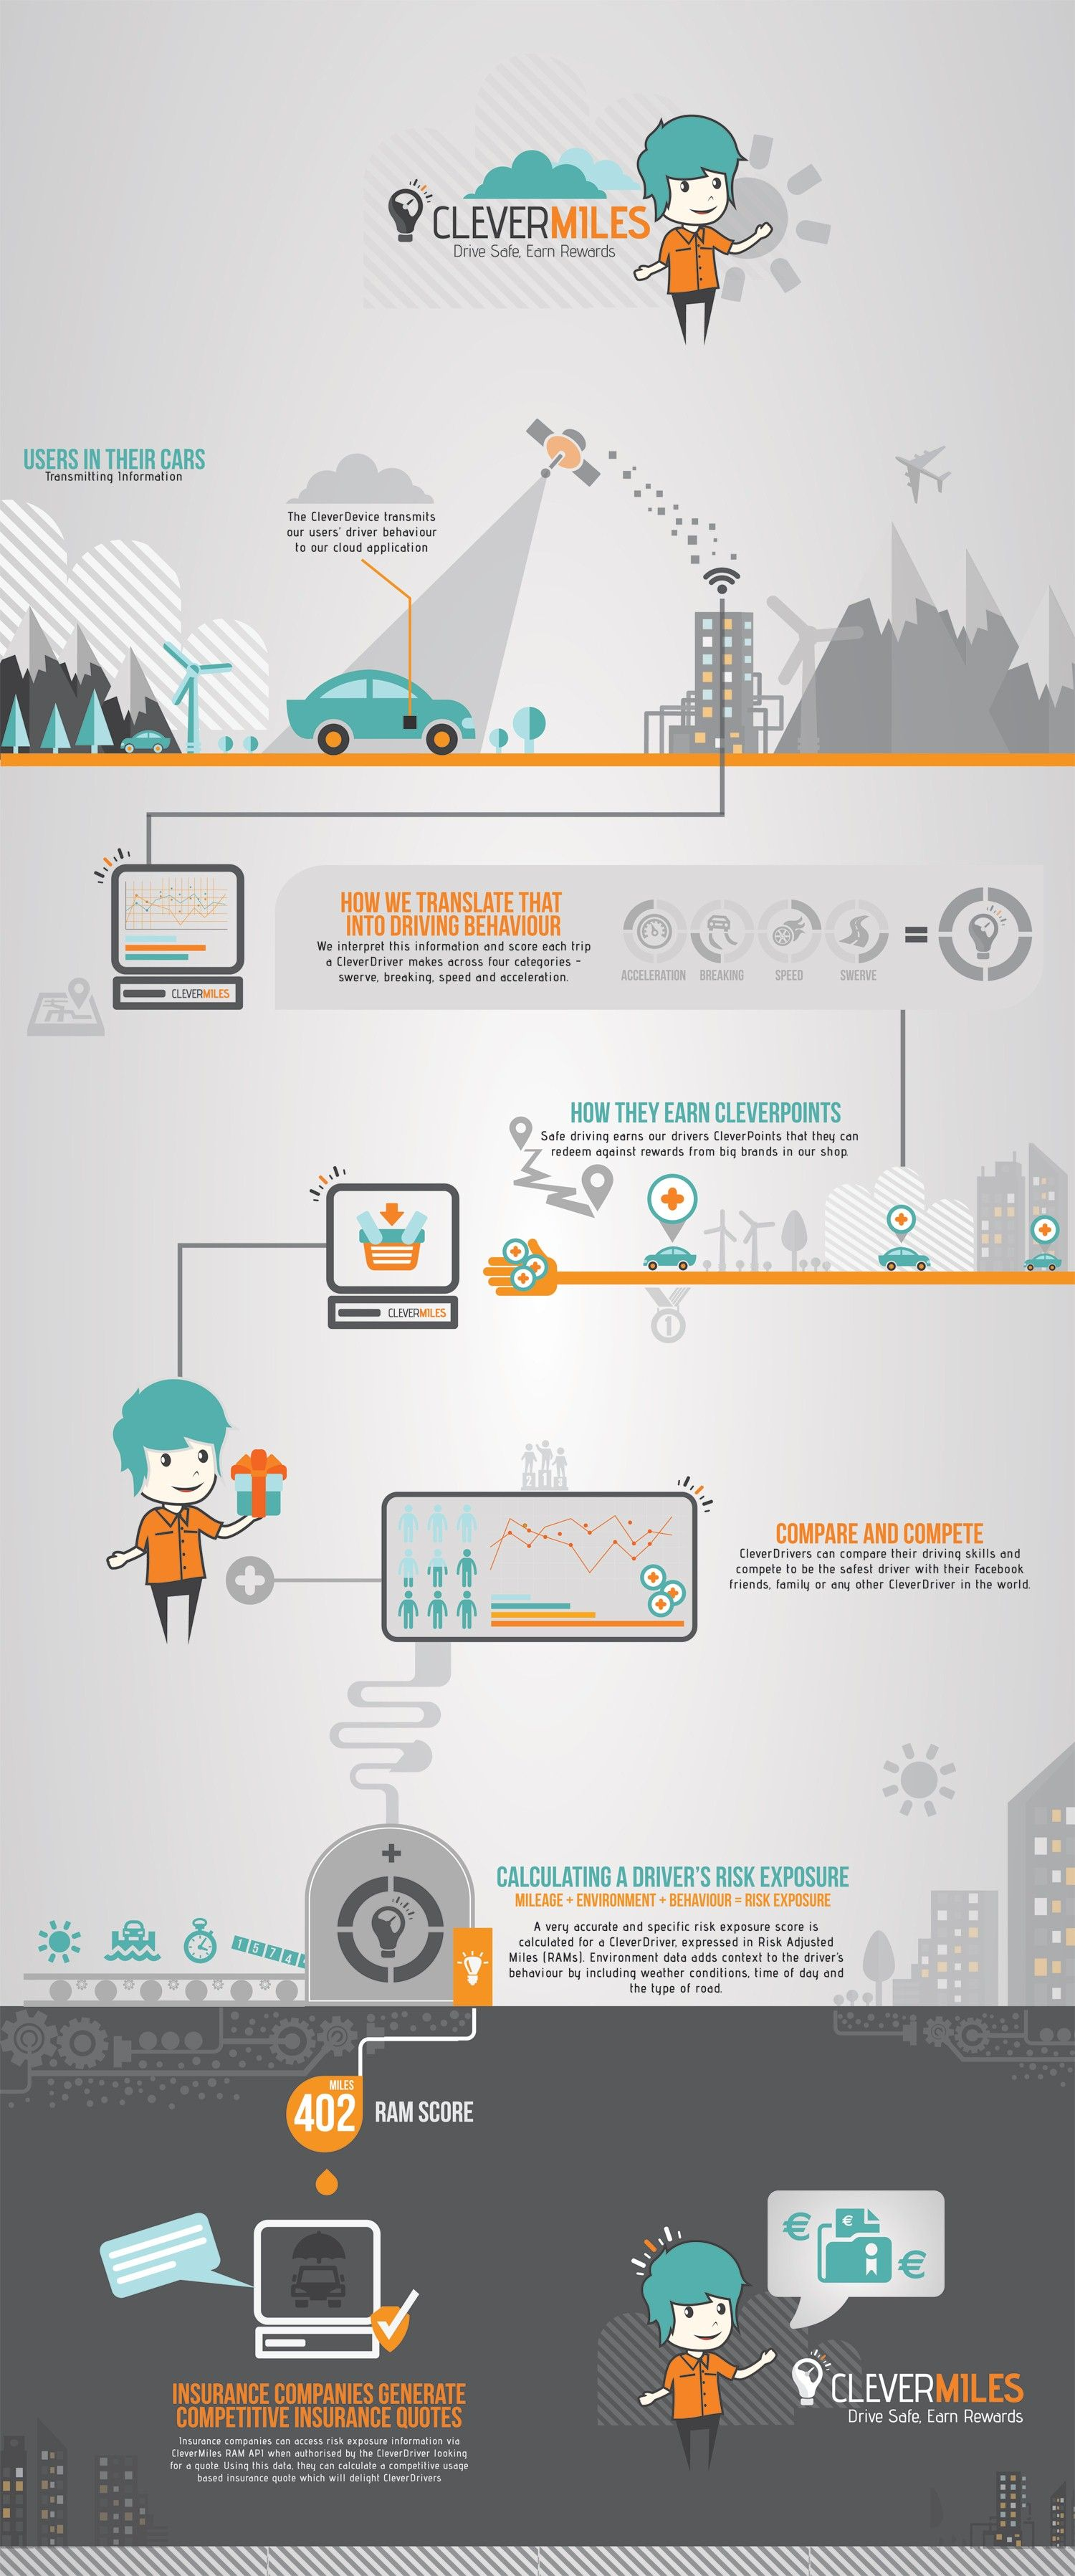 This Infographic Shows How Clevermiles Vehicle Telematics Works